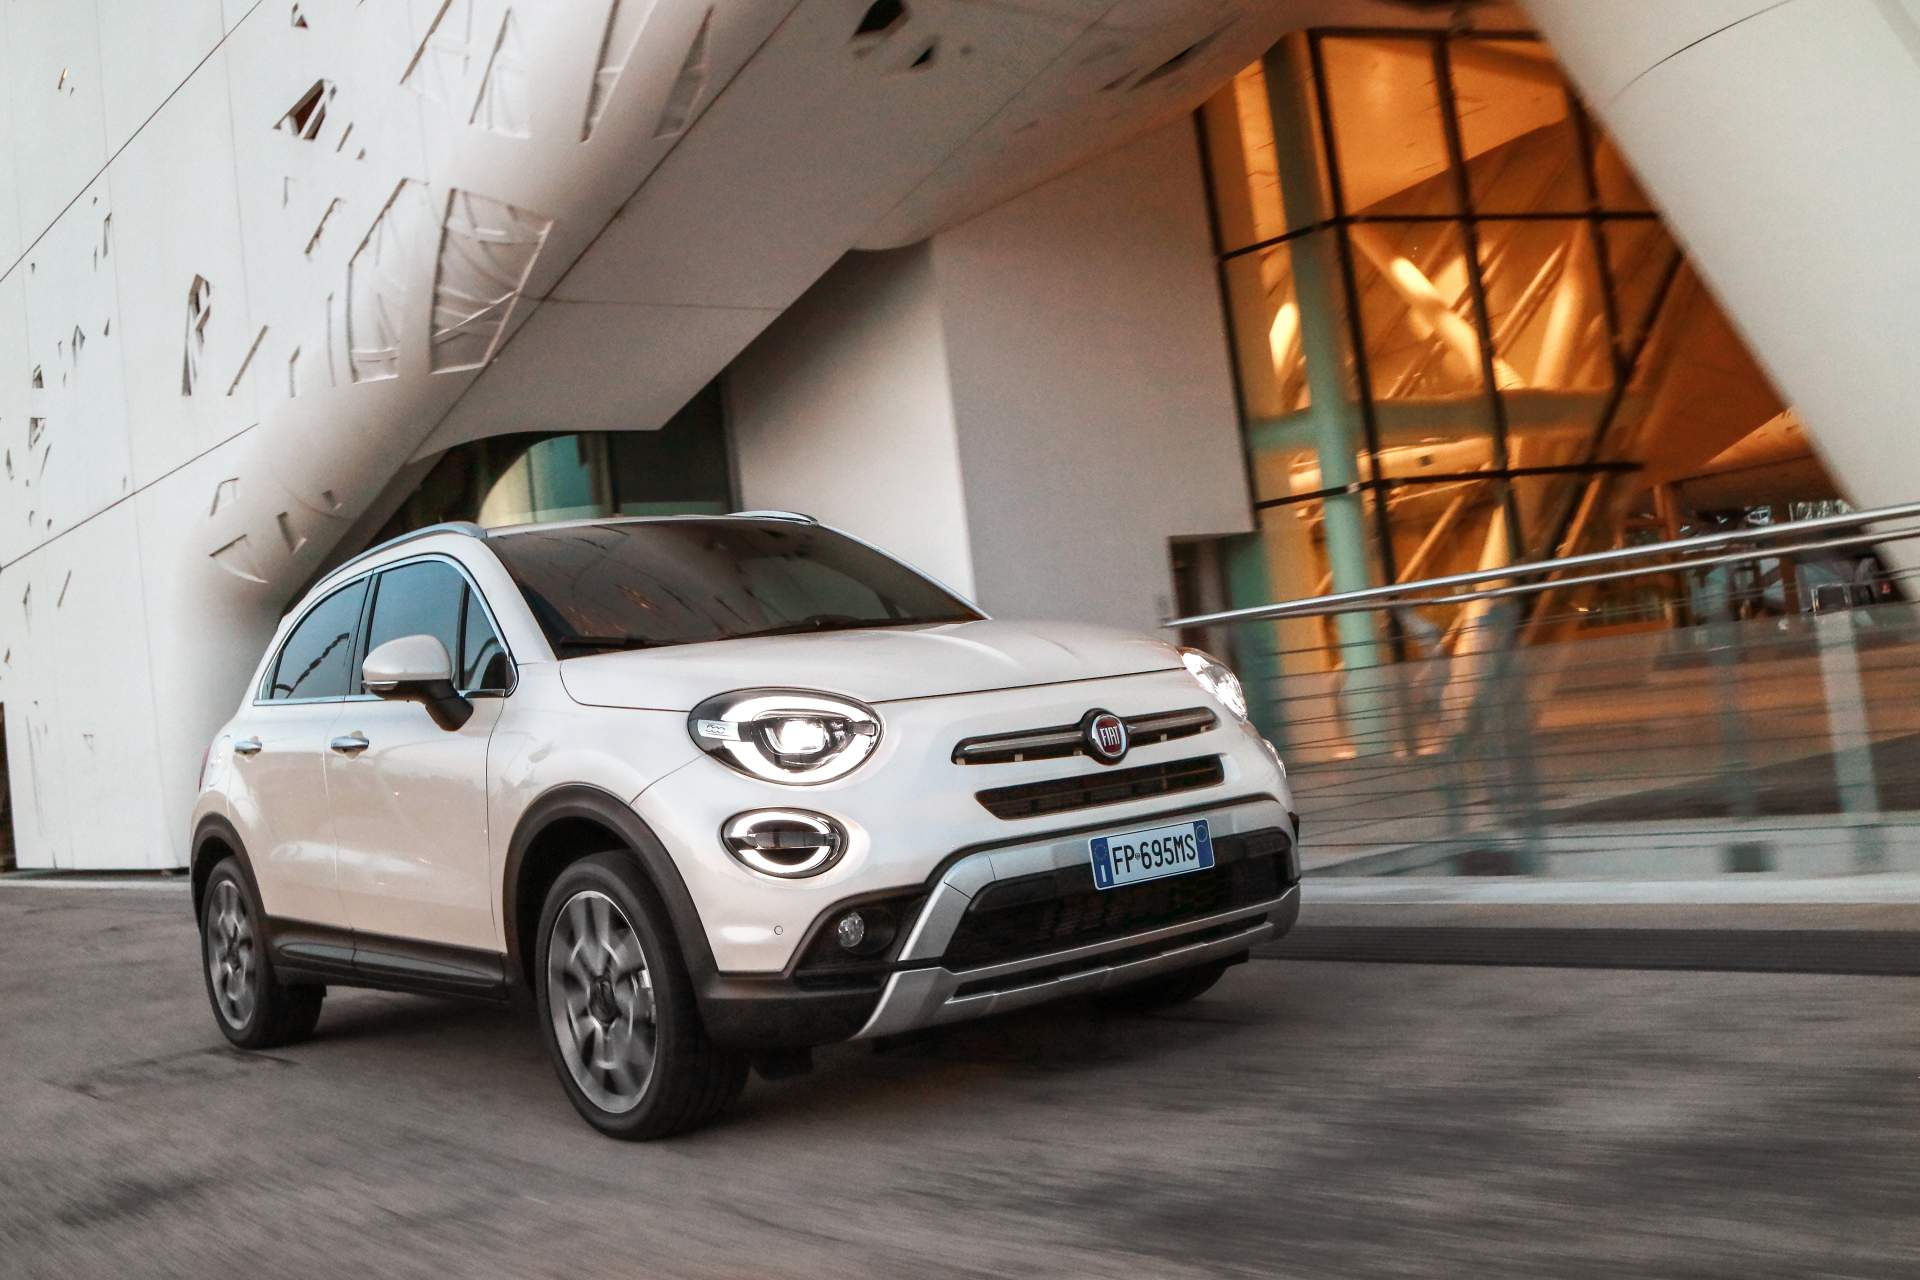 2019 Fiat 500x Facelifted To Match The Jeep Renegade Vs Facelift